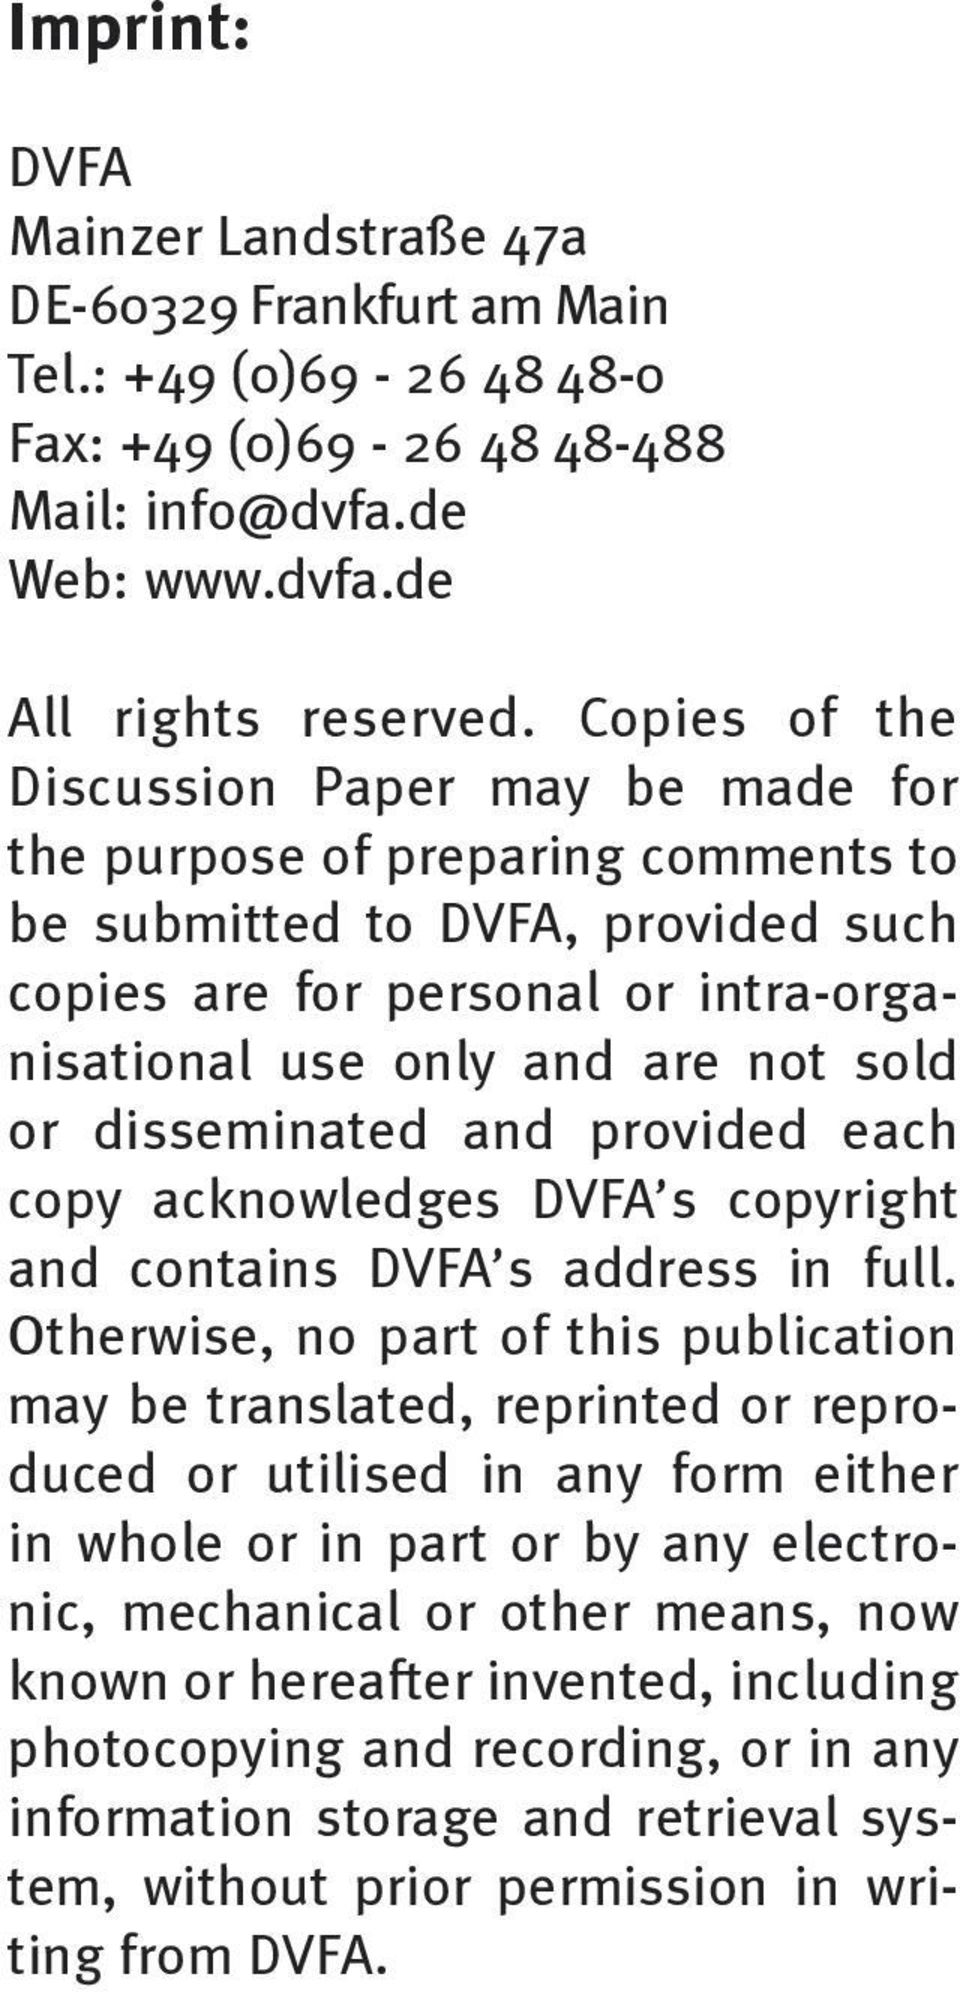 disseminated and provided each copy acknowledges DVFA s copyright and contains DVFA s address in full.